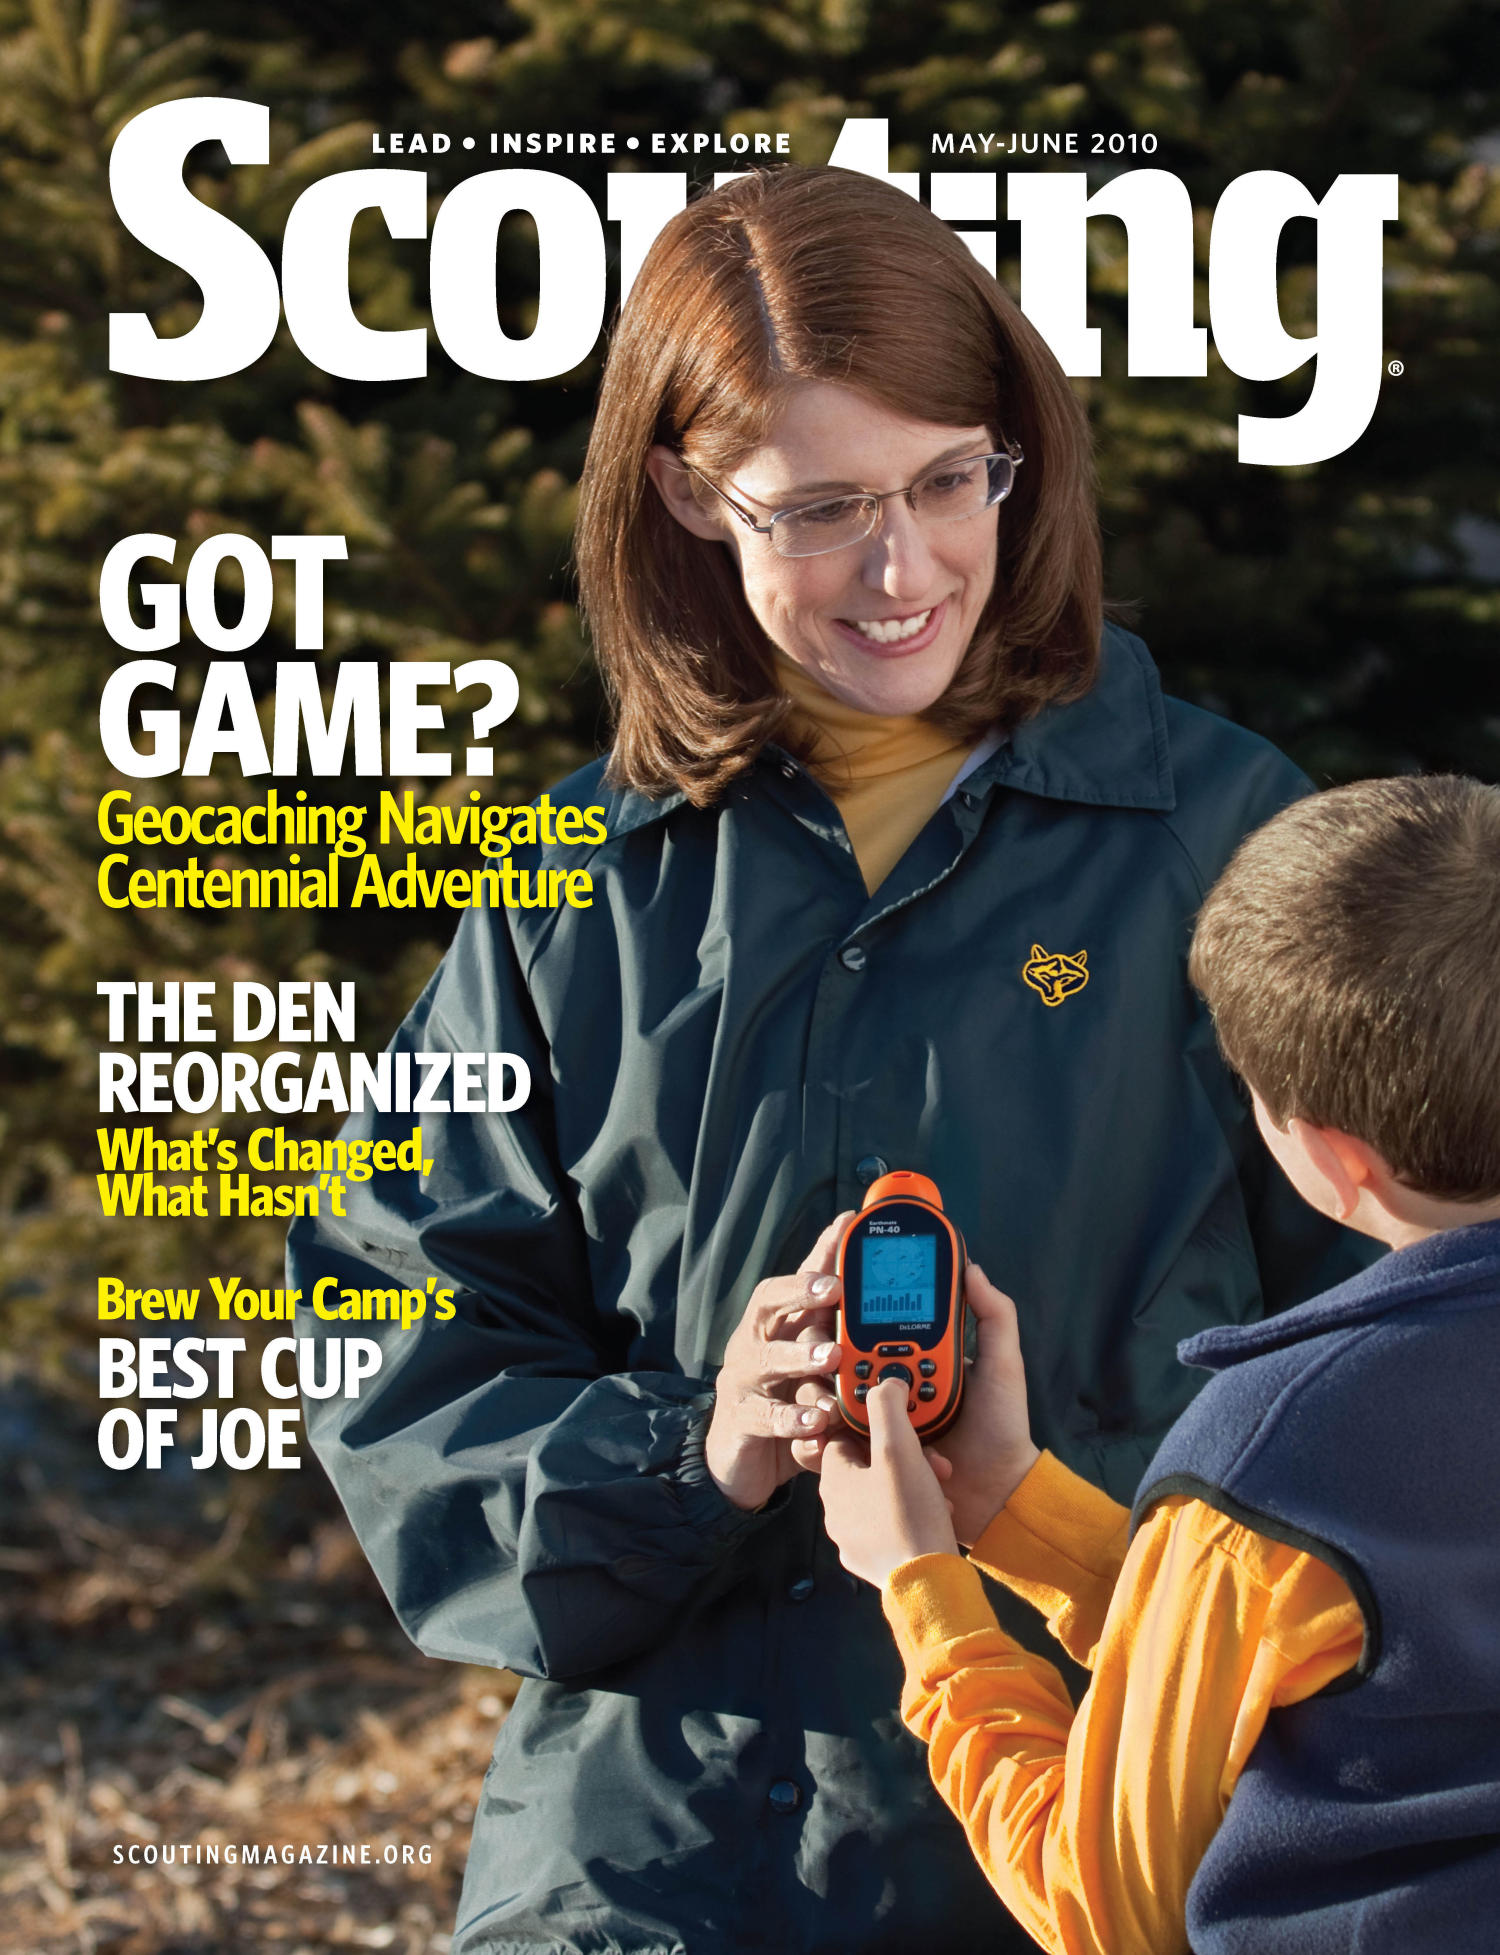 Scouting, Volume 98, Number 3, May-June 2010                                                                                                      Front Cover